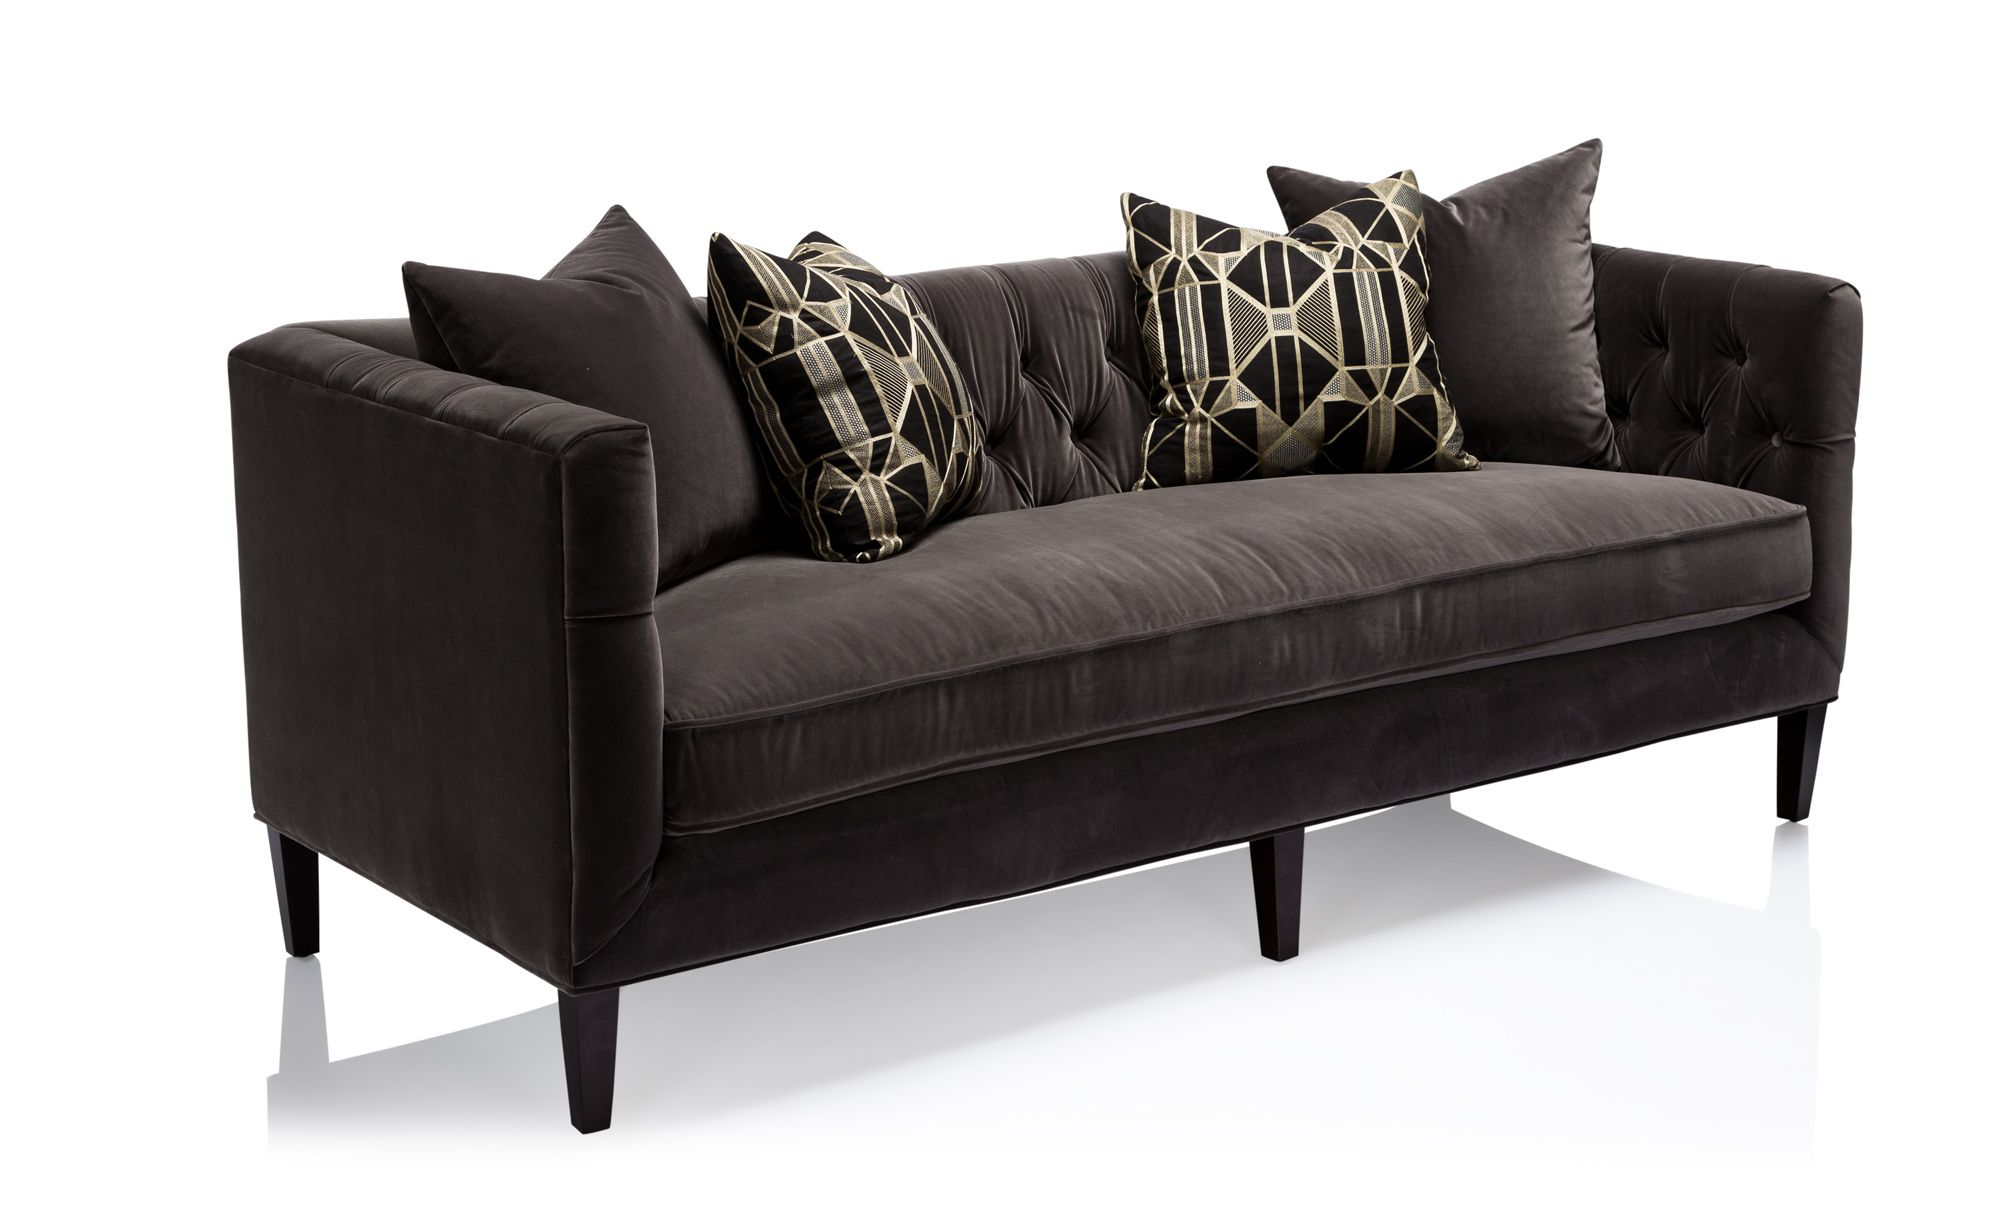 Available in a sofa or loveseat the Chamonix Tufted Sofa from